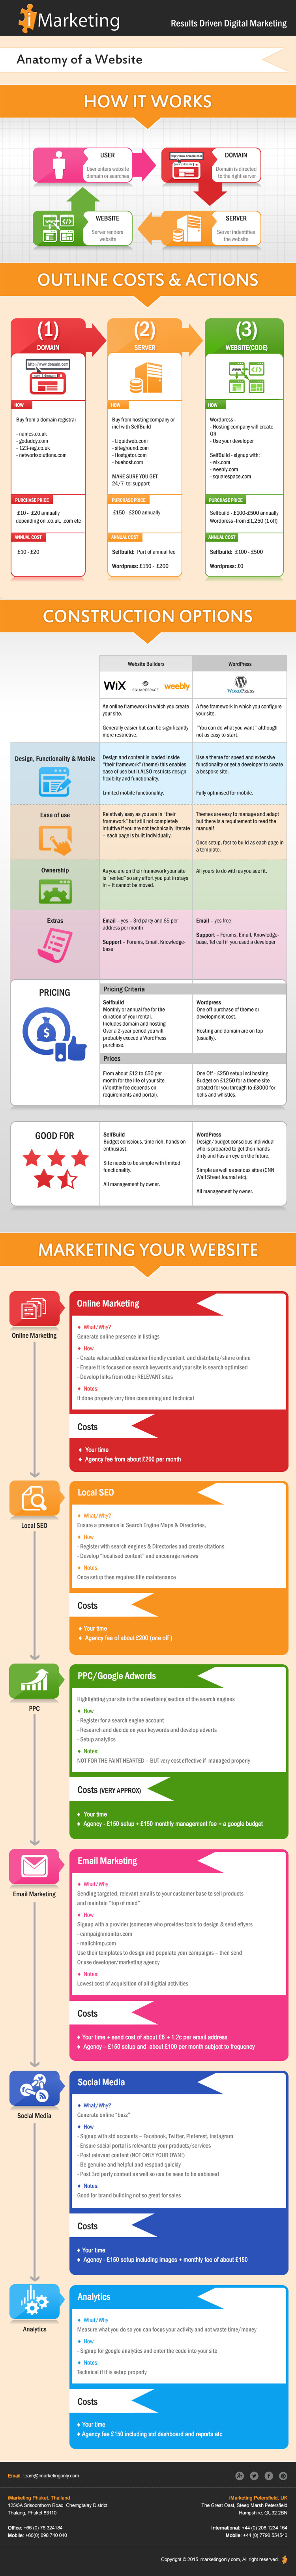 Creating and marketing a website